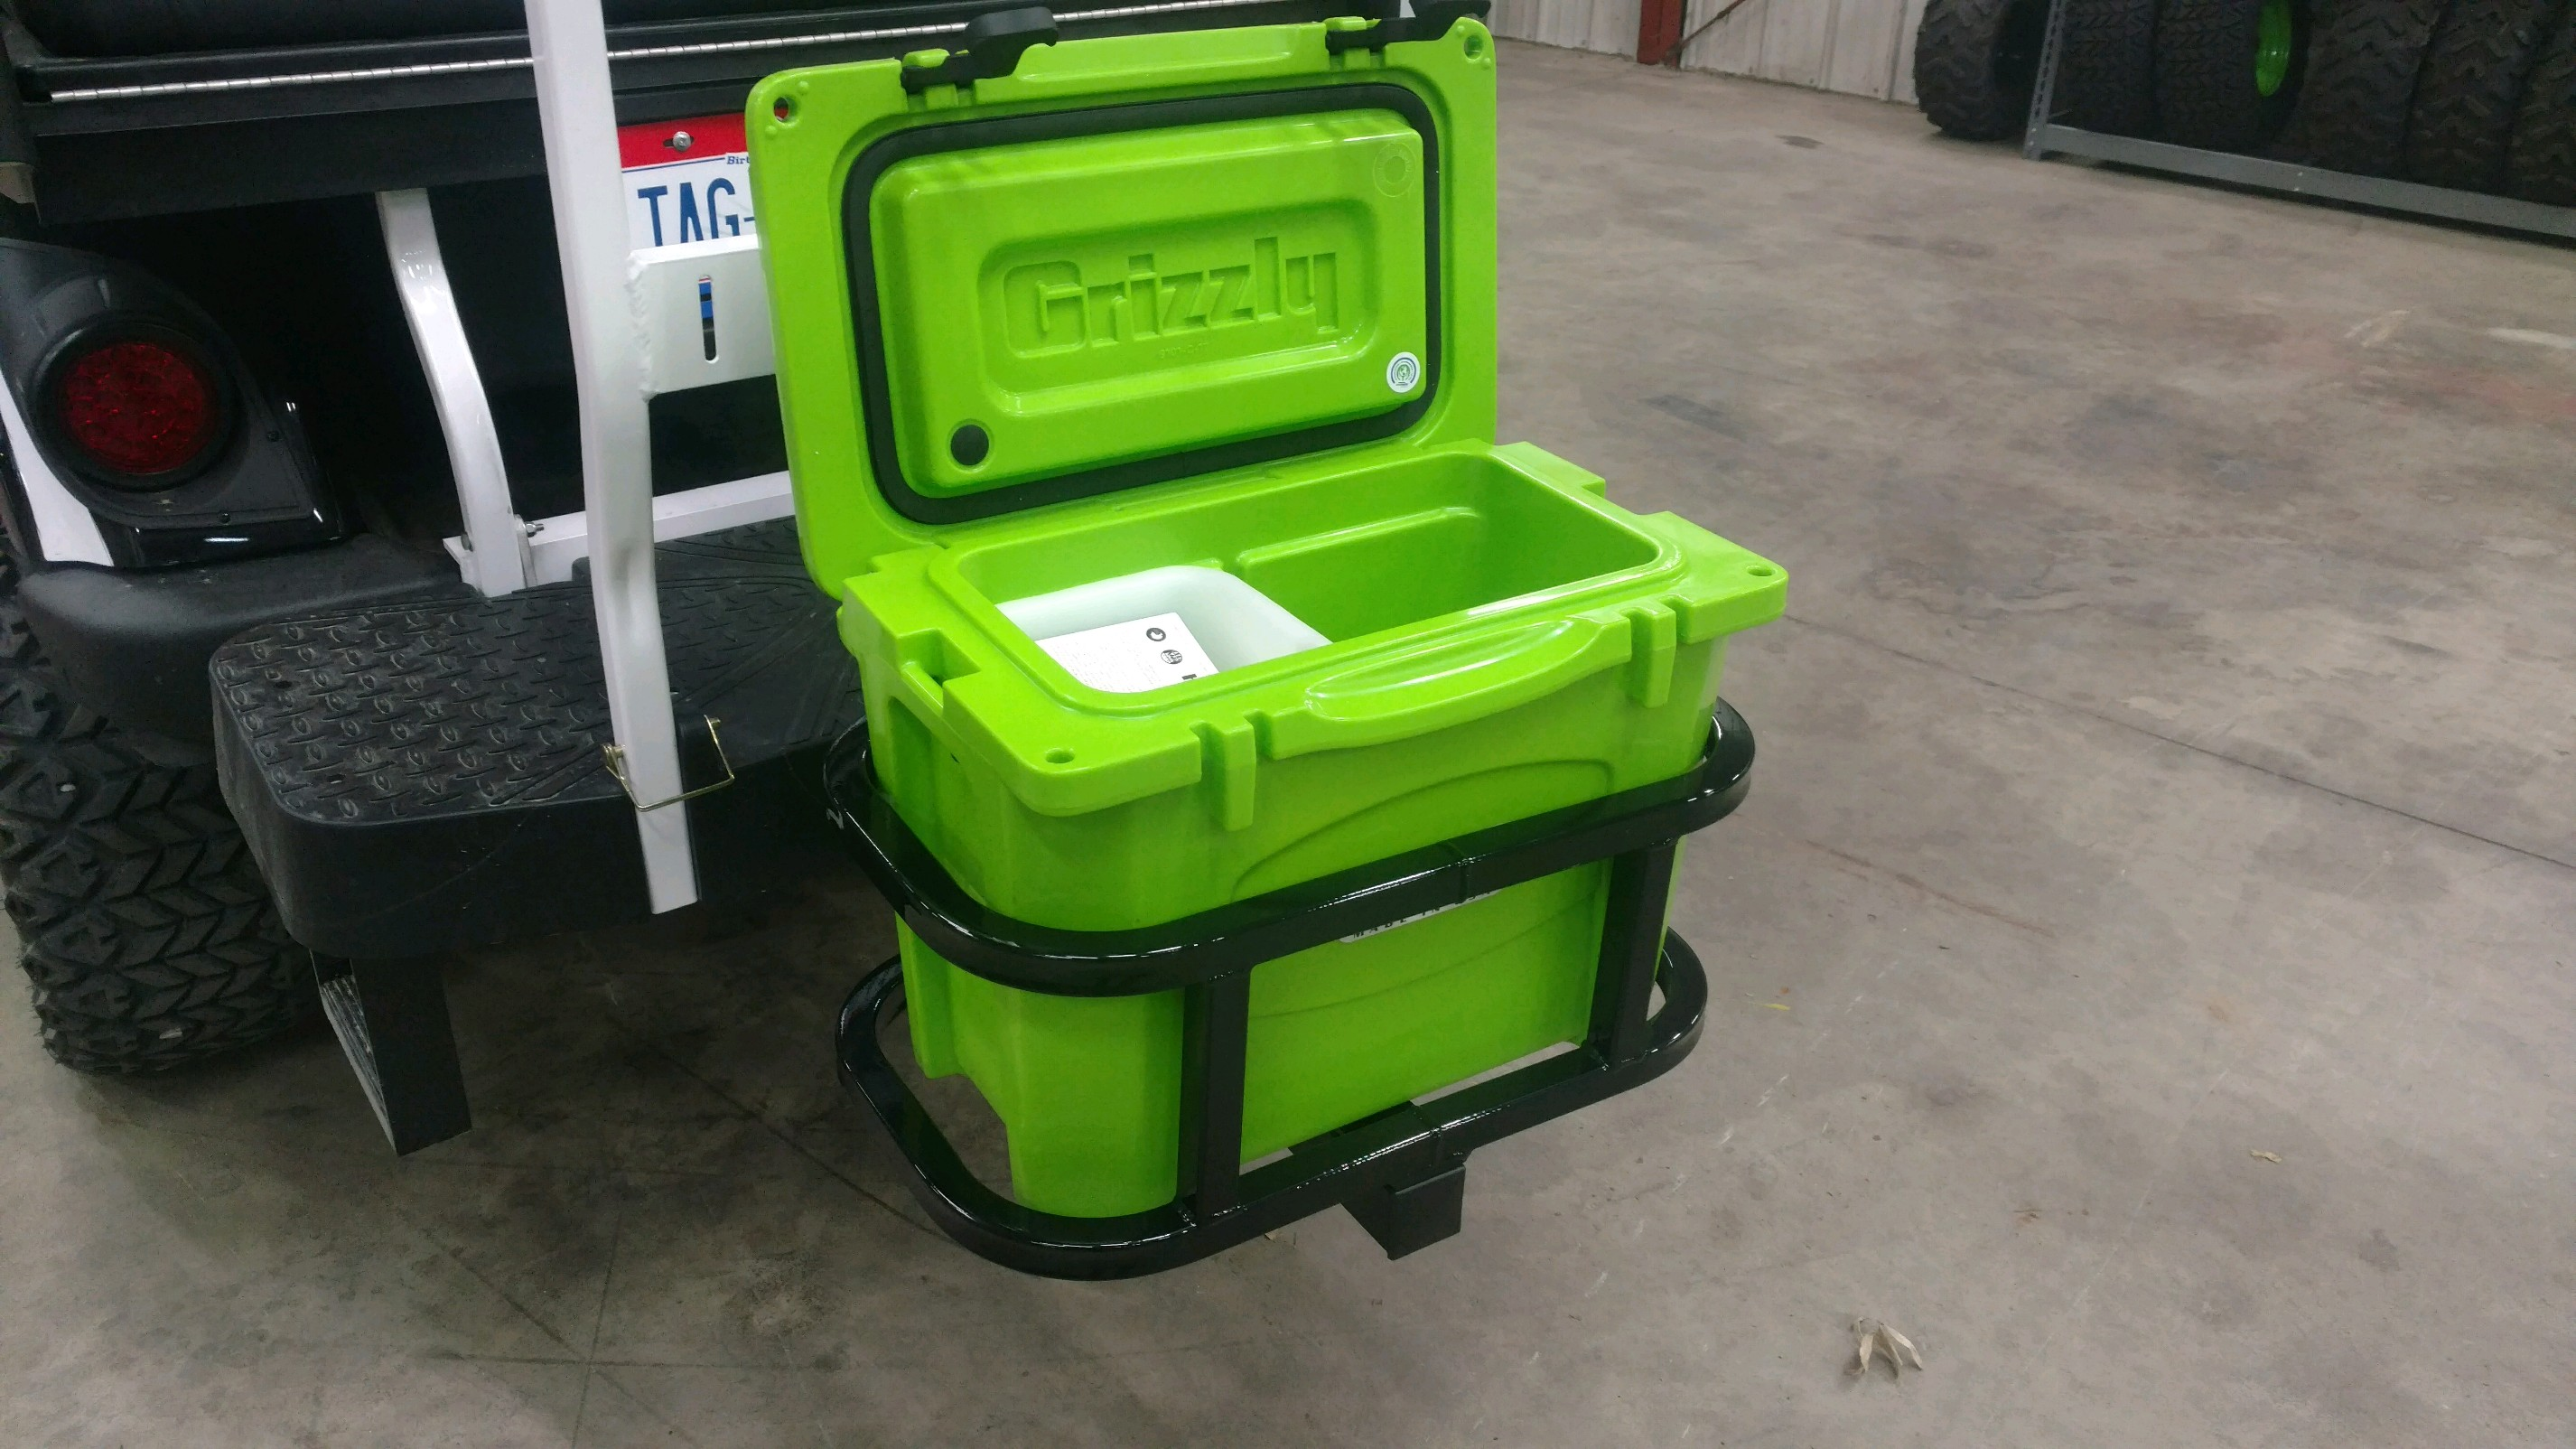 Grizzly 15 Hitch Cooler Carrier